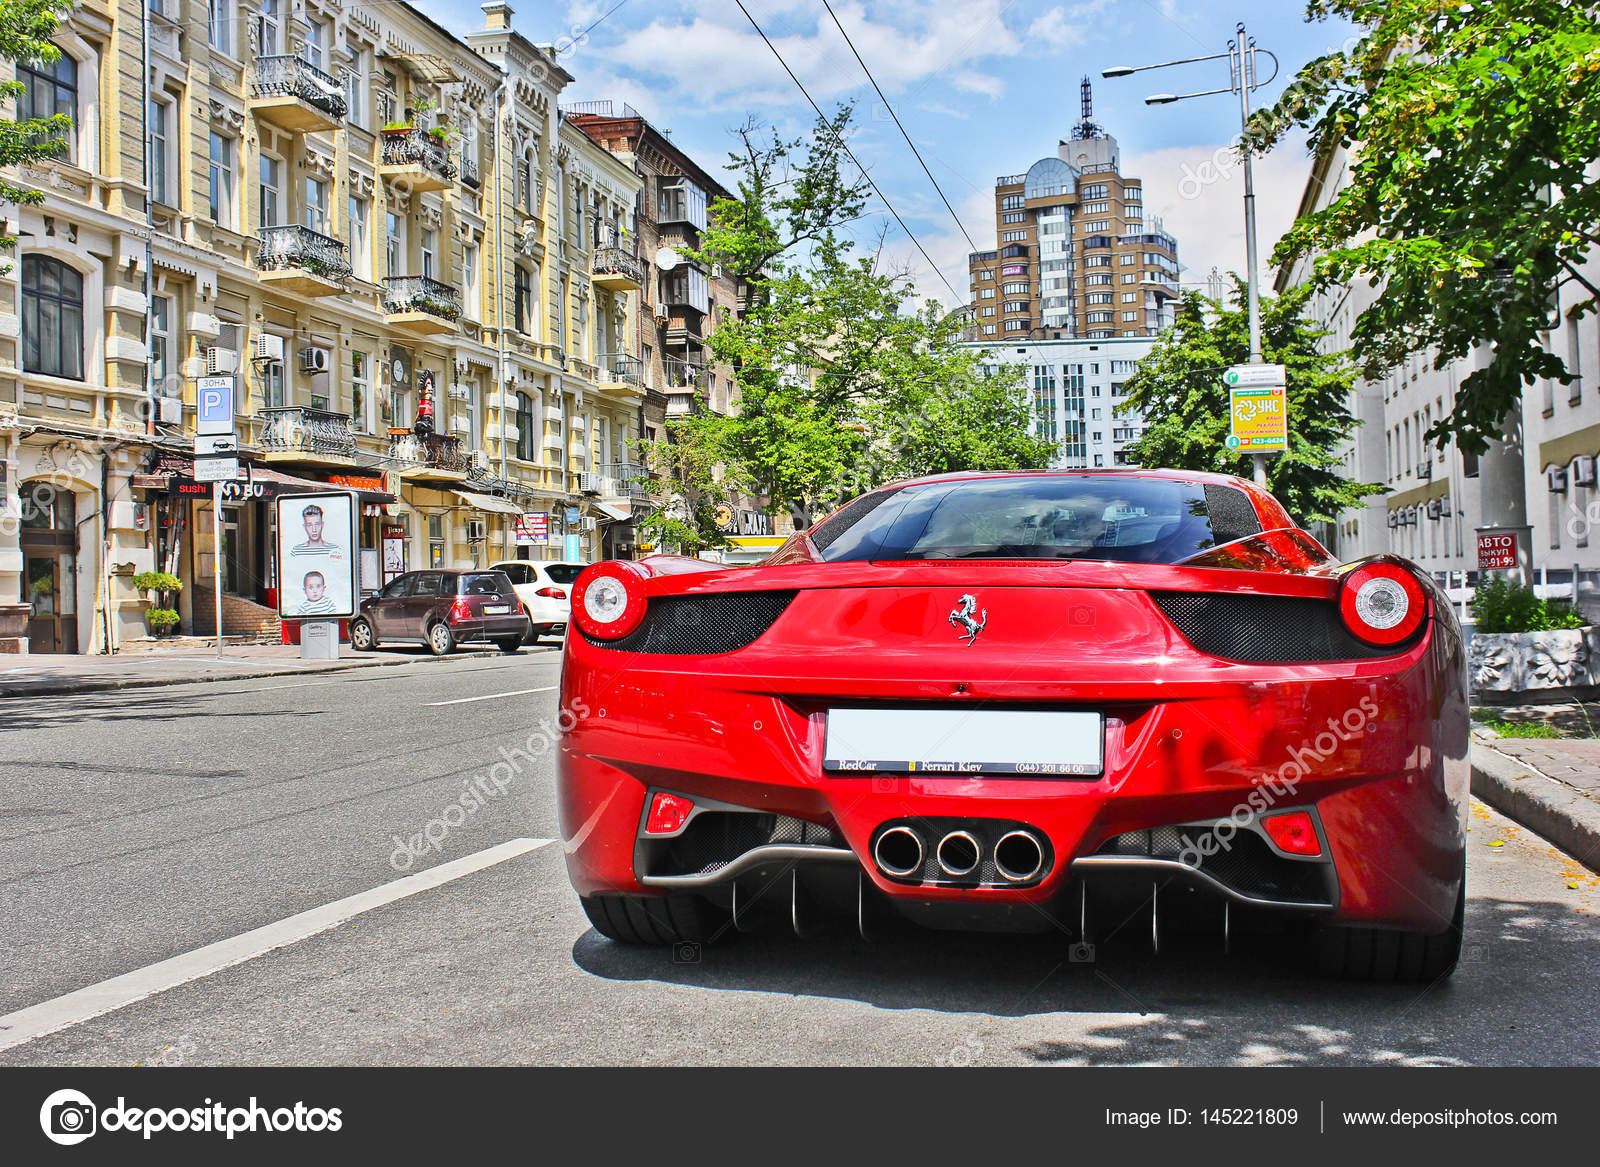 Kiev Ukraine June 10 2013 Ferrari 458 Italia In The City Red Ferrari Editorial Photo Stock Editorial Photo C Amor7 145221809